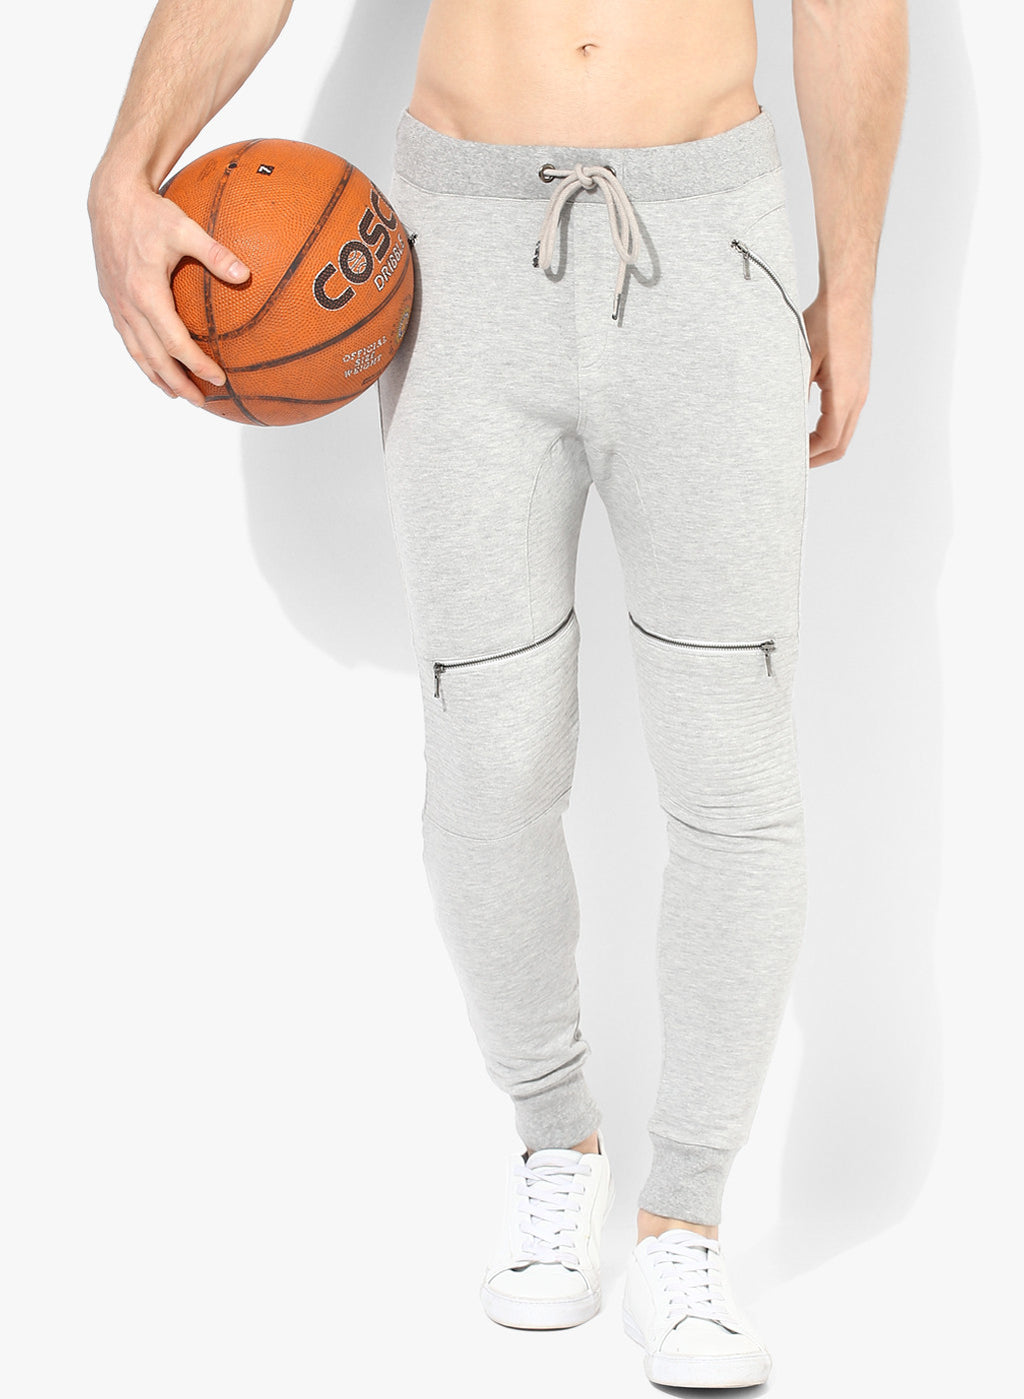 Spiritual Warrior grey joggers for men are both comfortable and high quality. They keep you cool and dry. These sweatpants are great for yoga, gym, relaxing